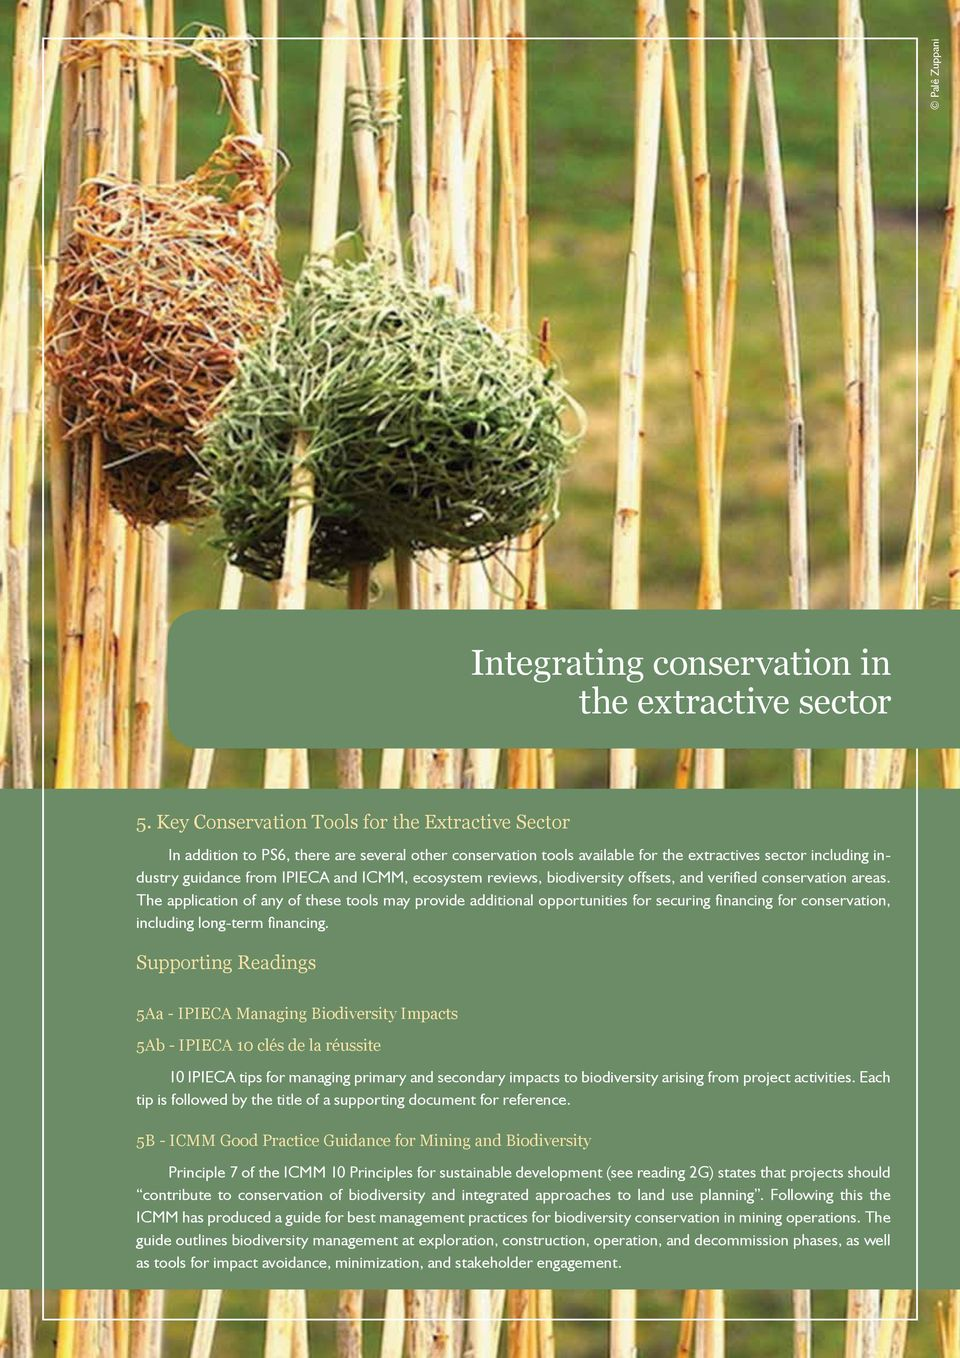 ecosystem reviews, biodiversity offsets, and verified conservation areas.